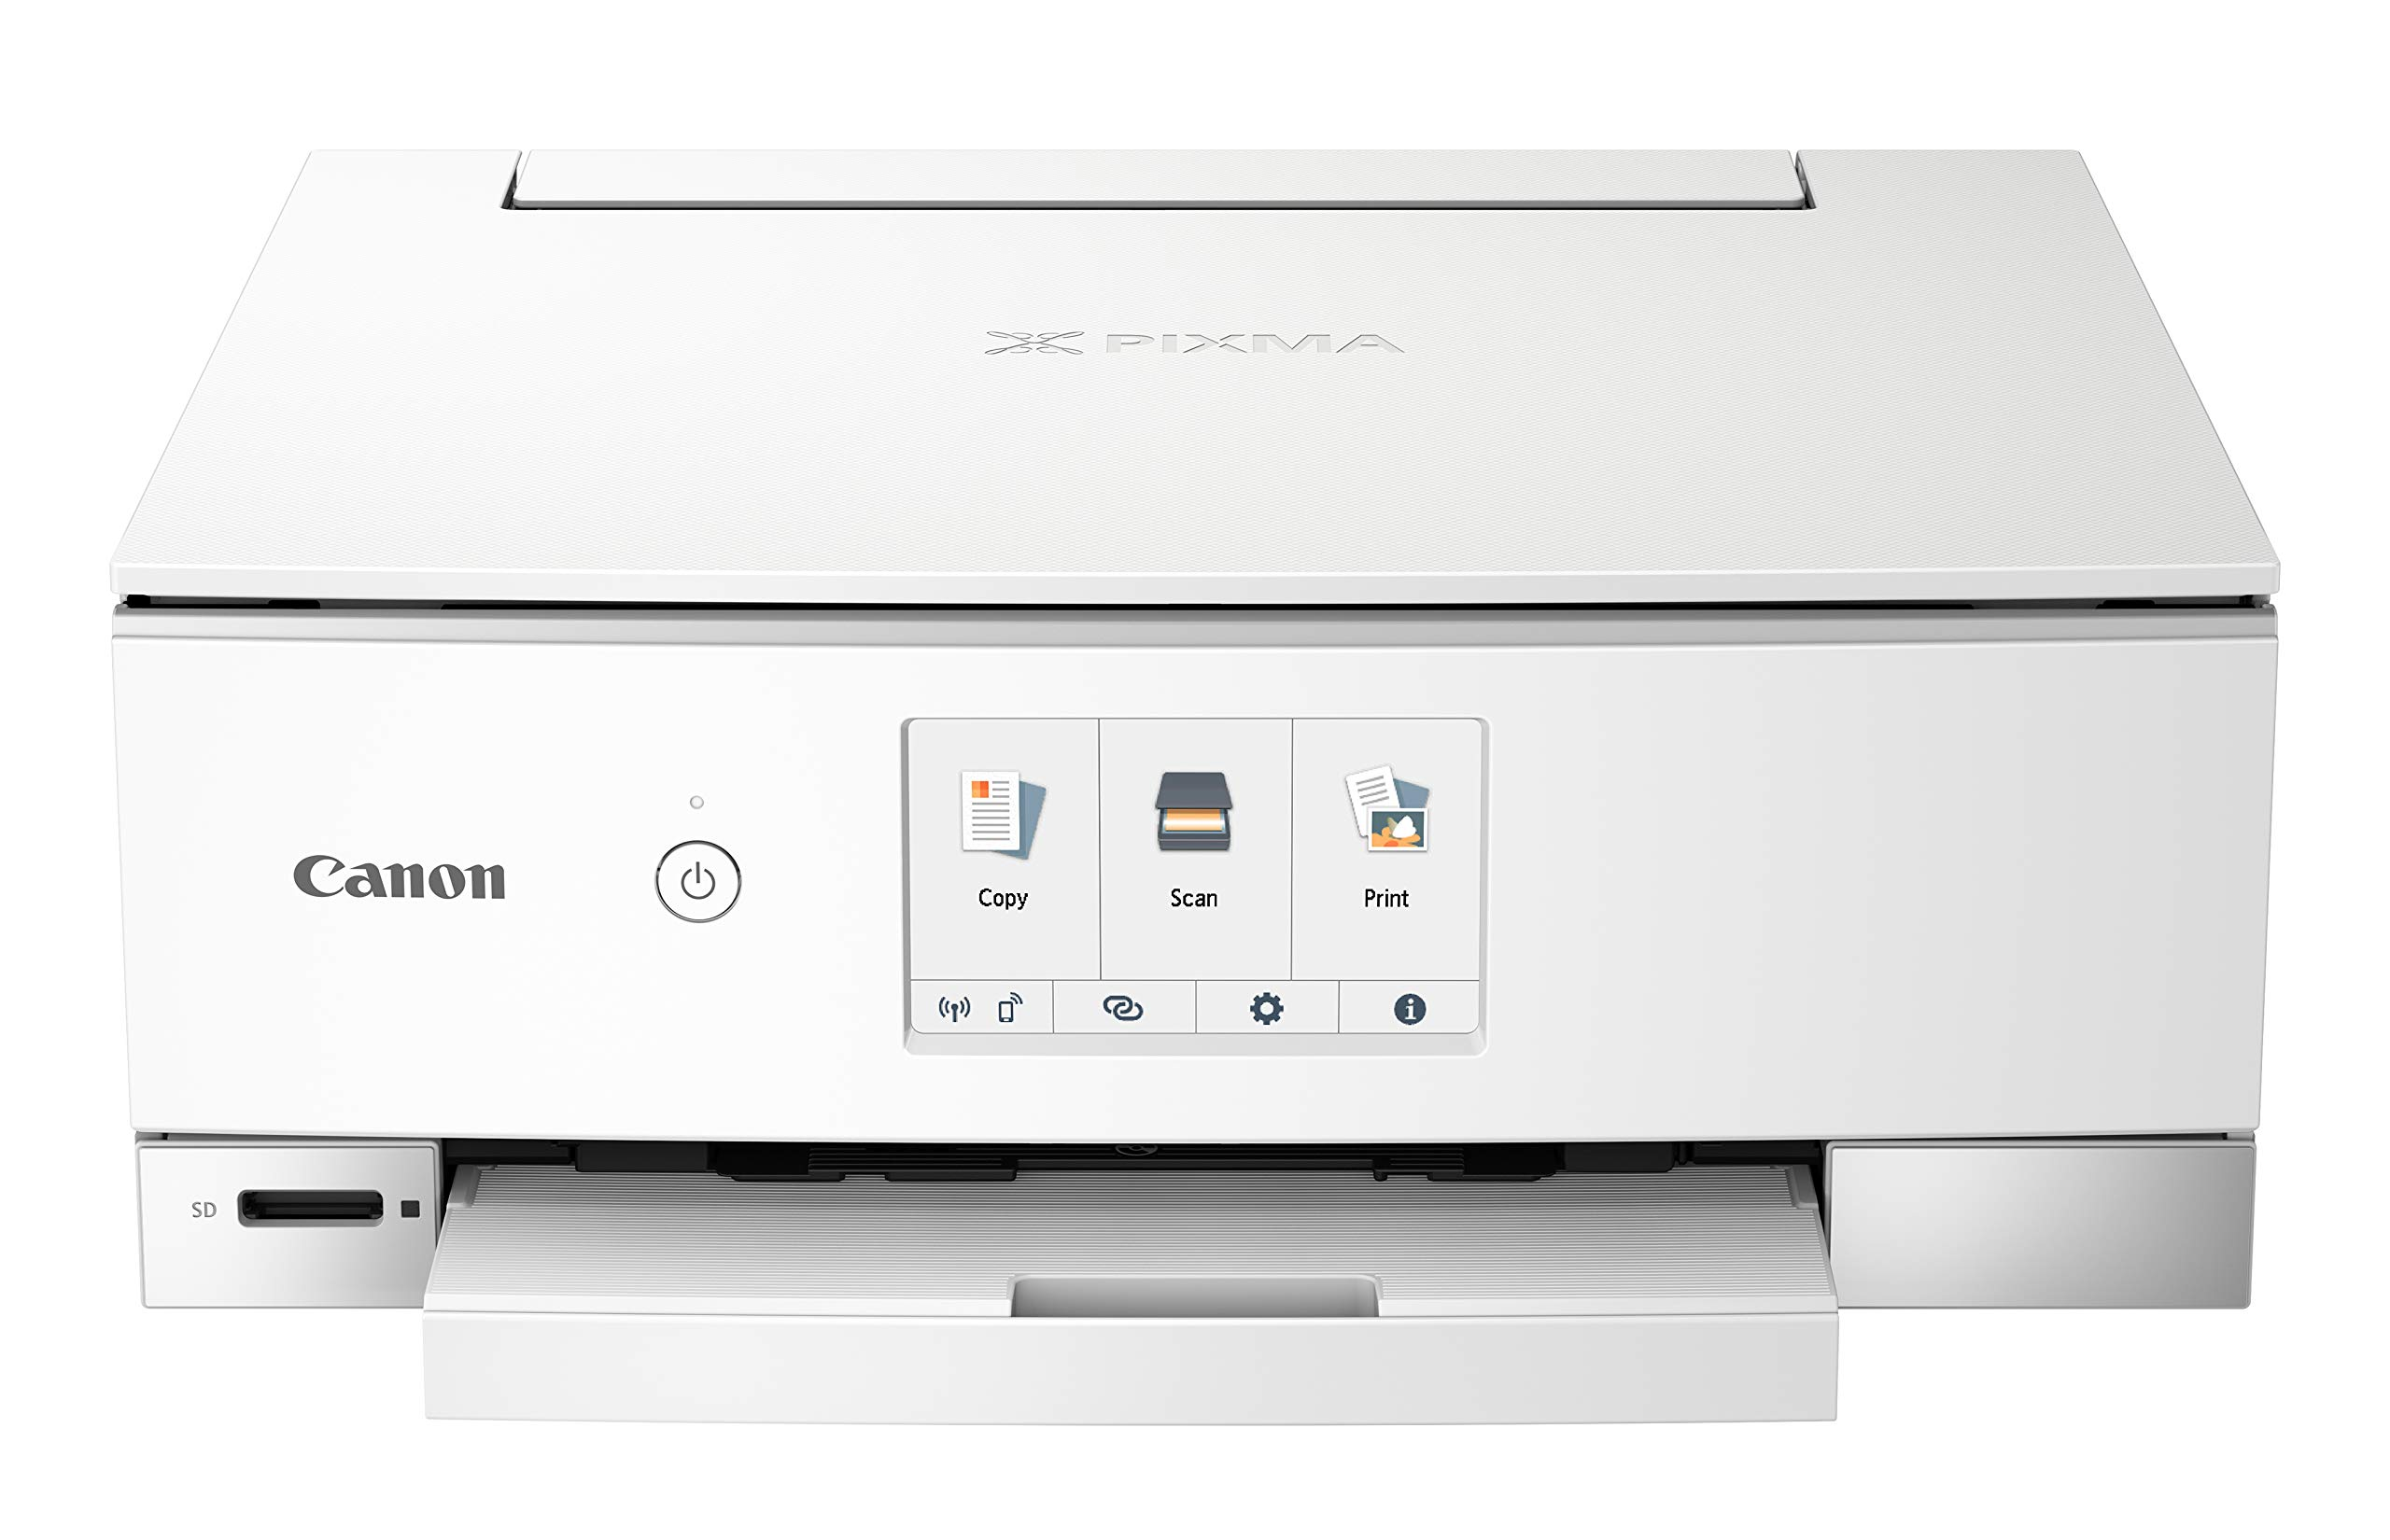 Canon TS8220 Wireless All in One Photo Printer with Scannier and Copier, Mobile Printing, White by Canon (Image #3)